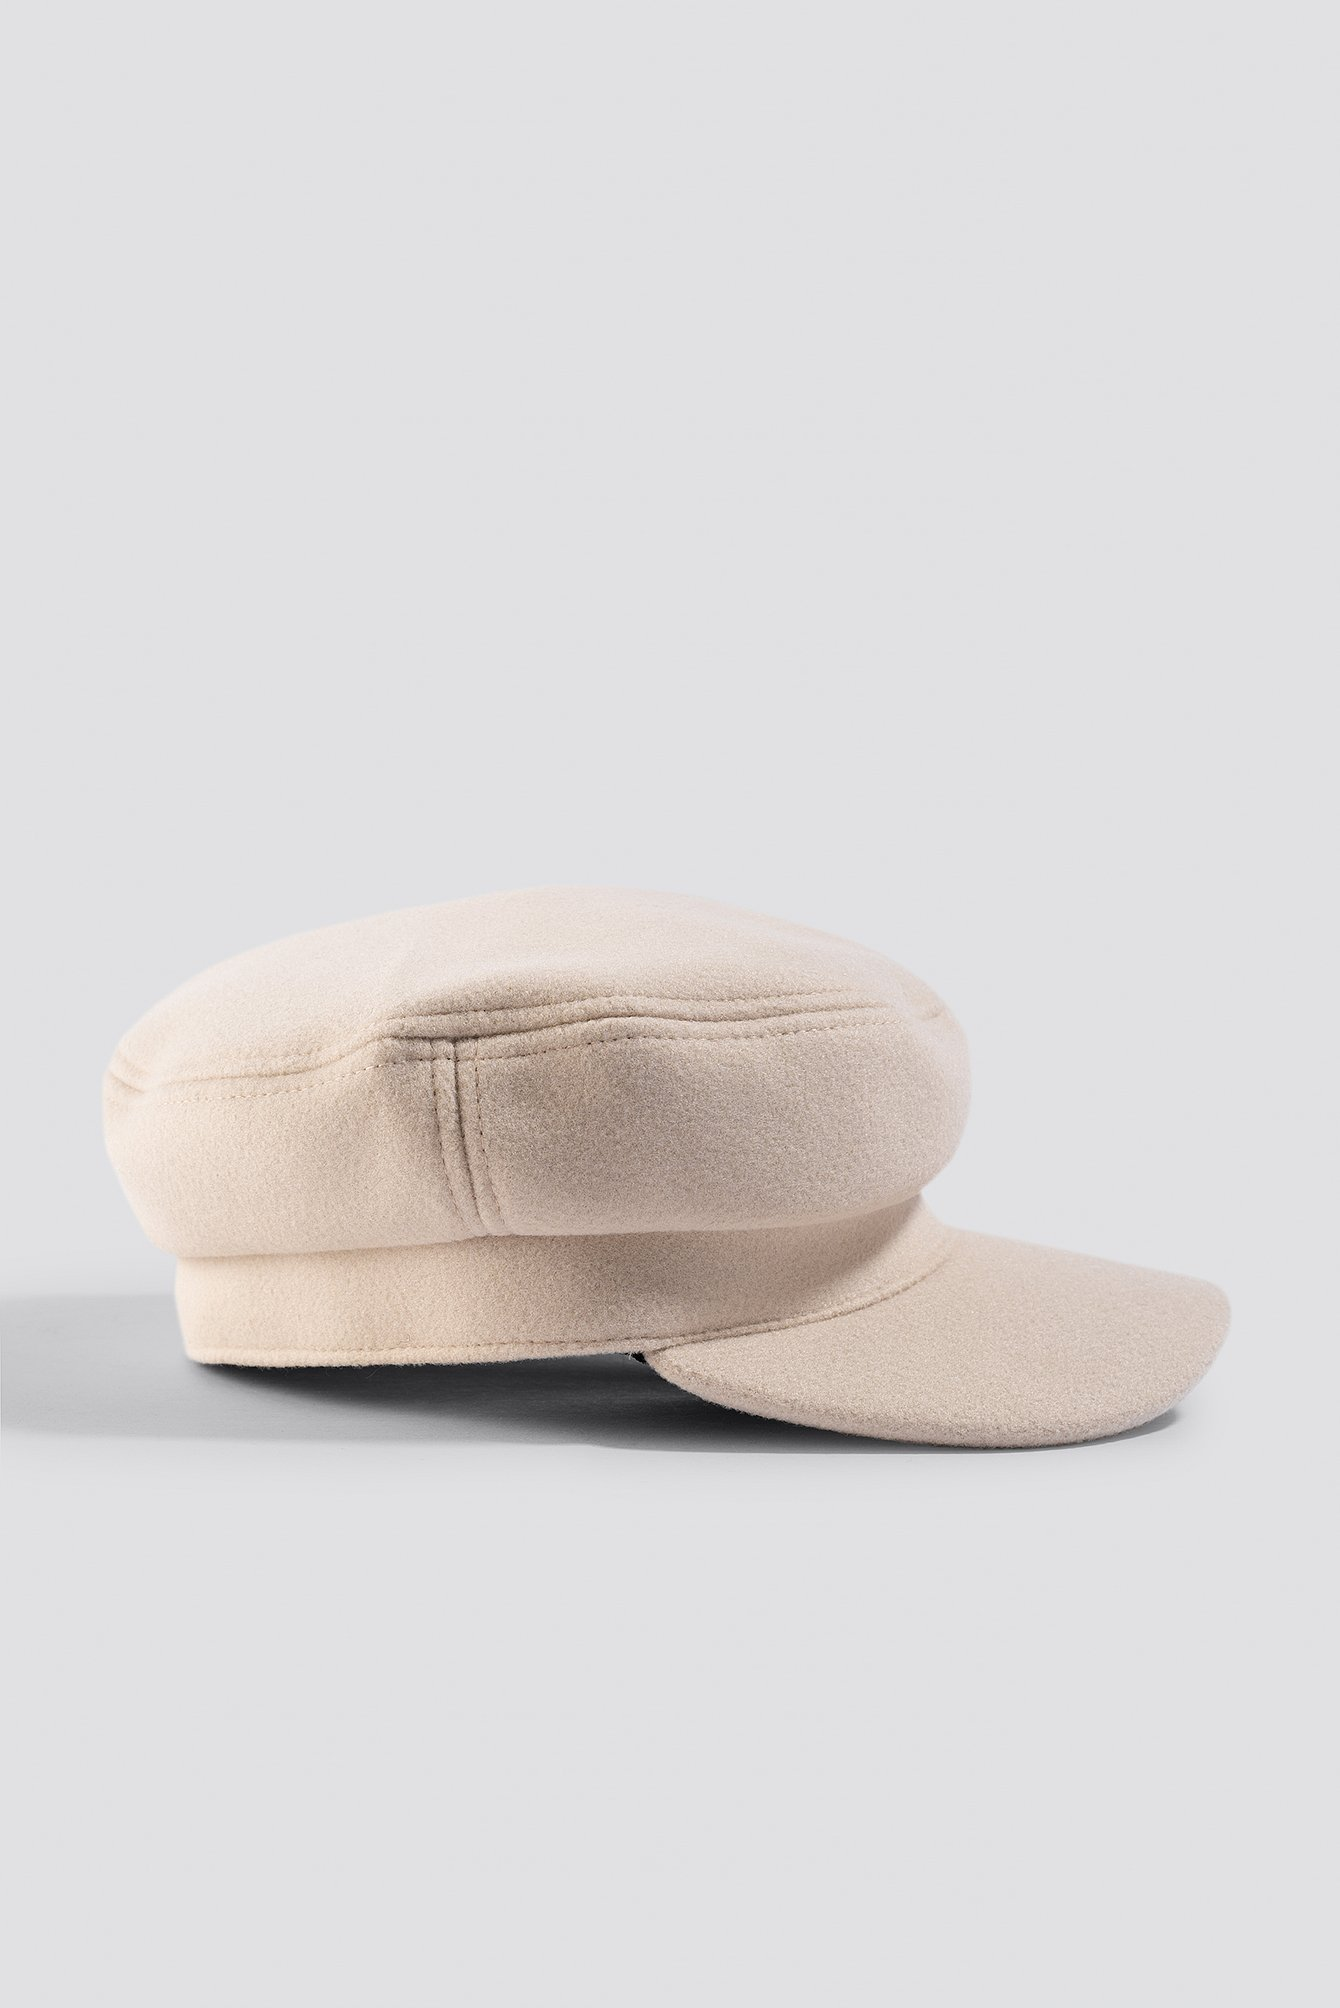 Soft Captains Cap NA-KD.COM